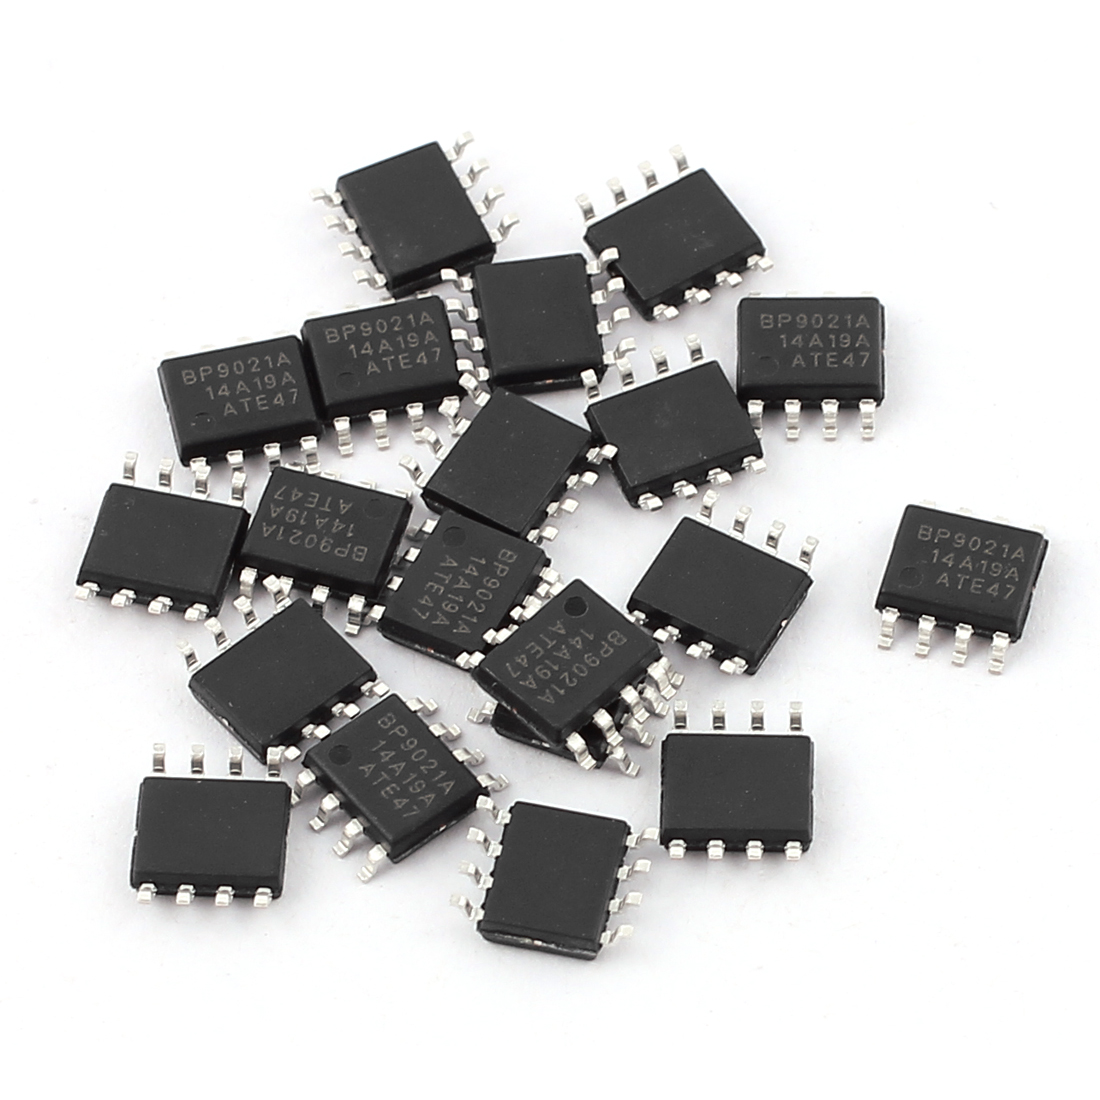 20Pcs BP9021A SOP-8 SMD SMT Type PCB Surface Mount LED Driver Circuit Module Integrated Circuit IC Chip